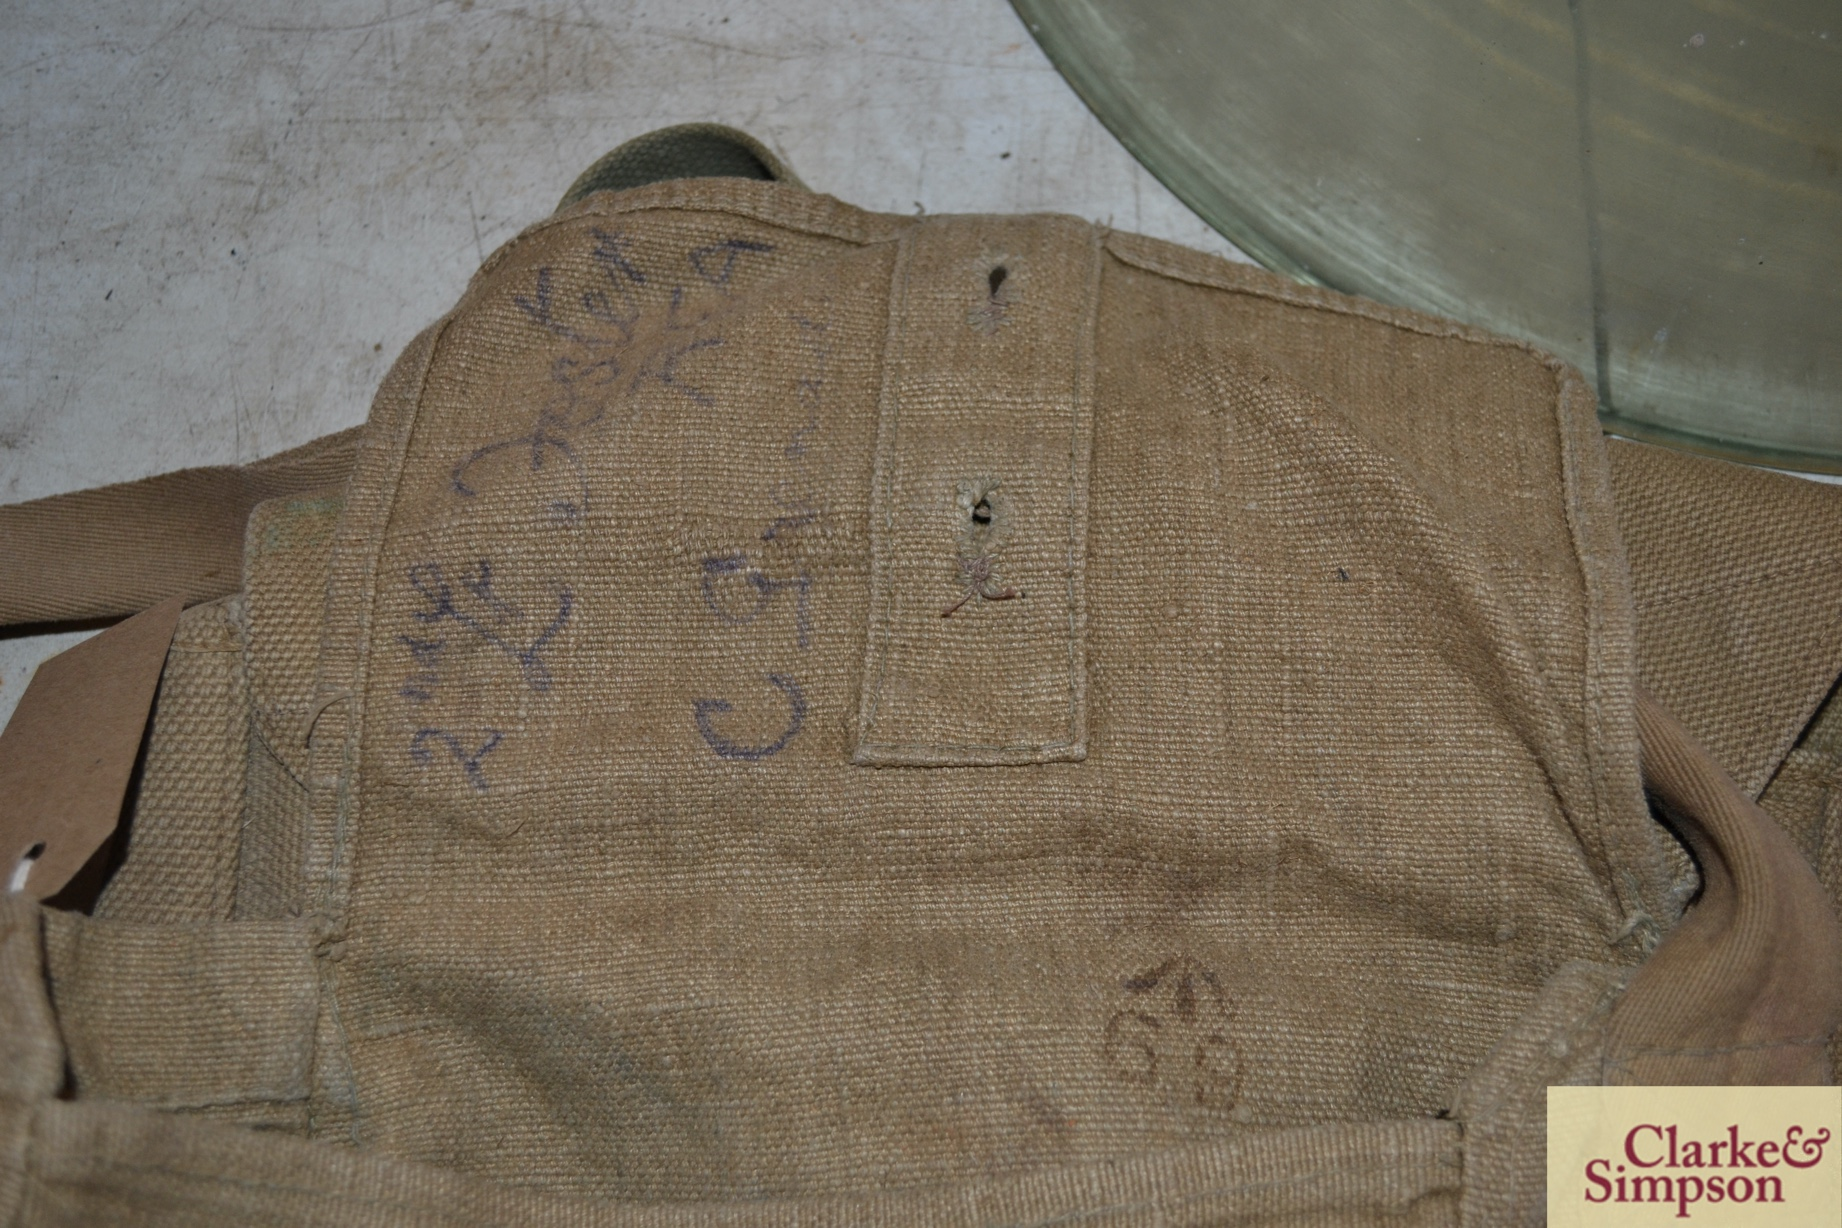 Two ex-war department canvas carrying bags - Image 6 of 7